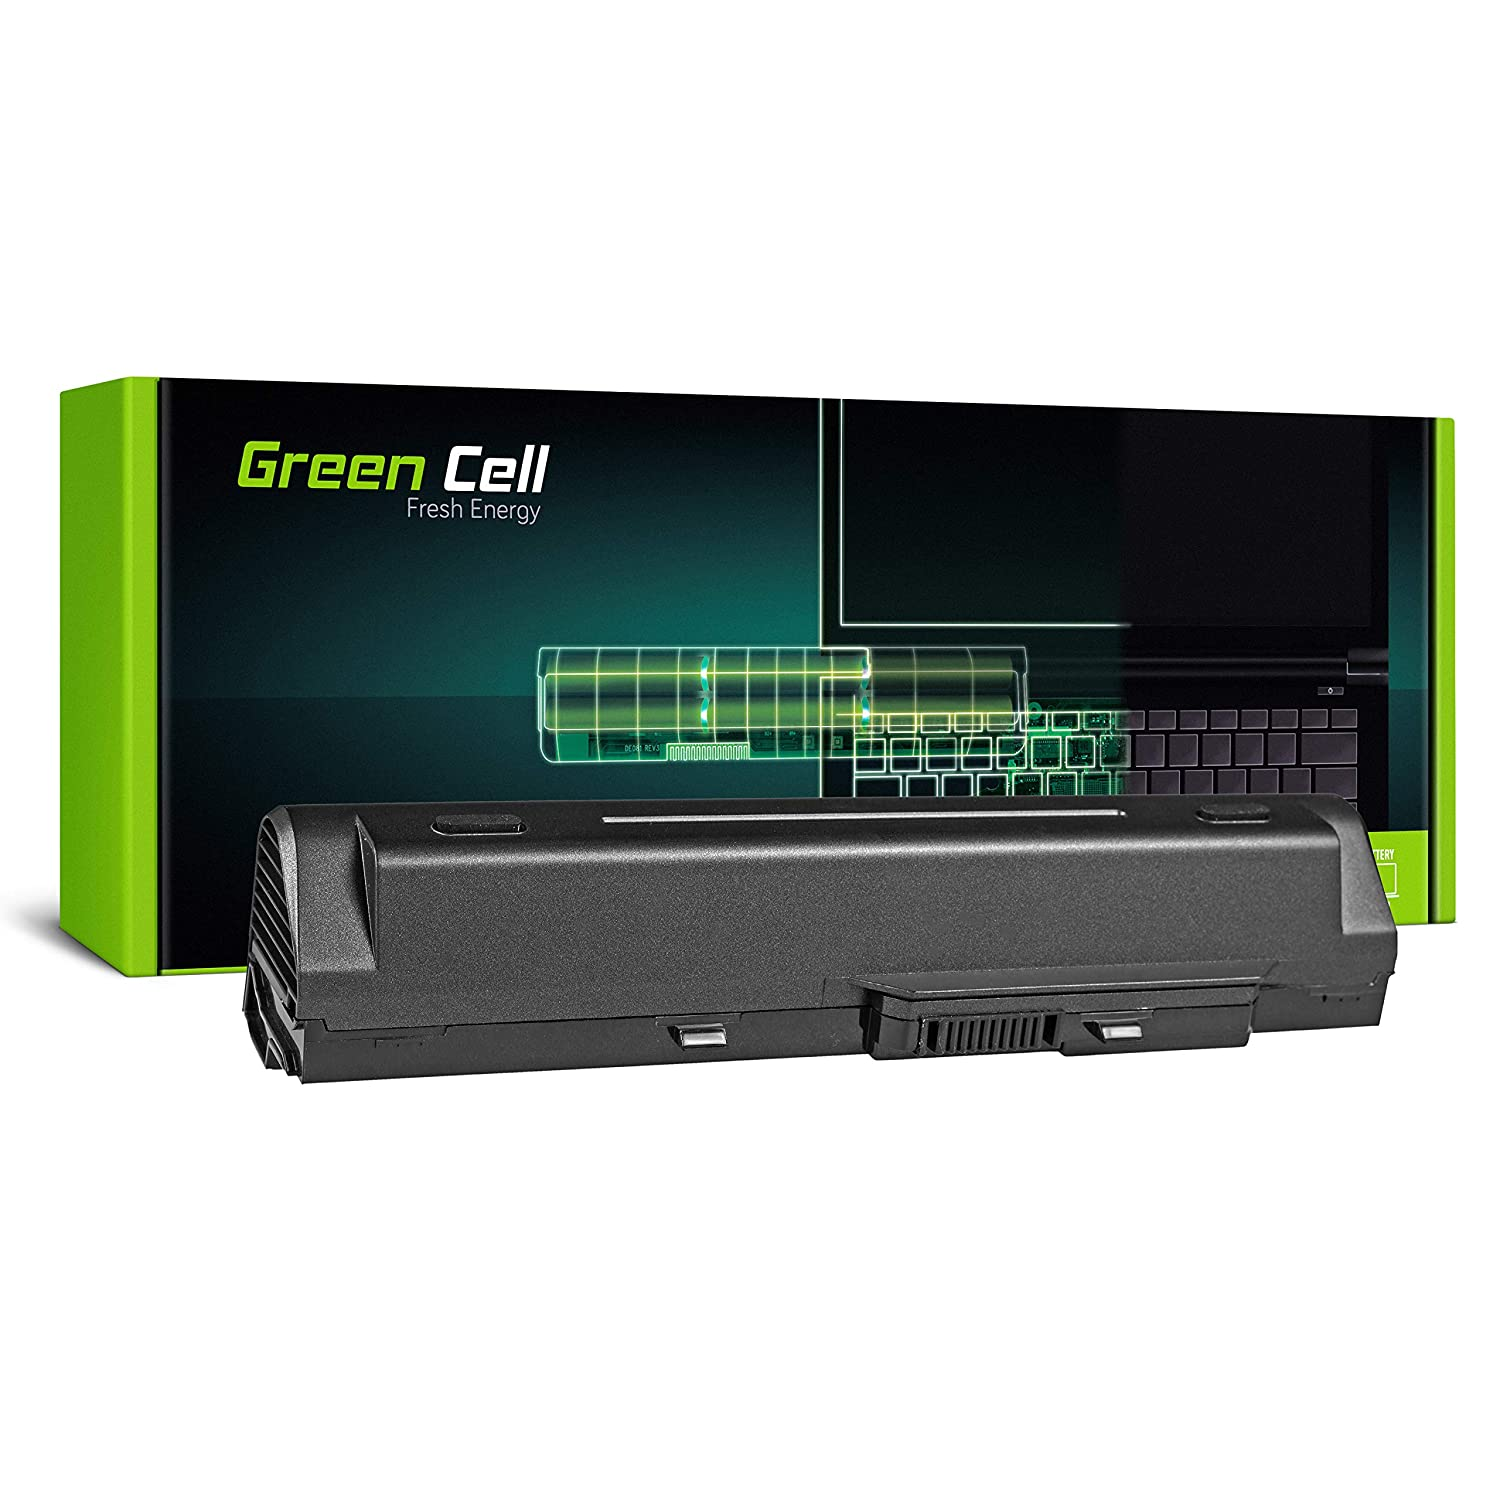 Green Cell® Extended Serie BTY-S11 BTY-S12 Batería para MSI Wind U90 U100 U110 U120 U130 U135 U135DX U200 U250 U270 Ordenador (9 Celdas 6600mAh 11.1V ...